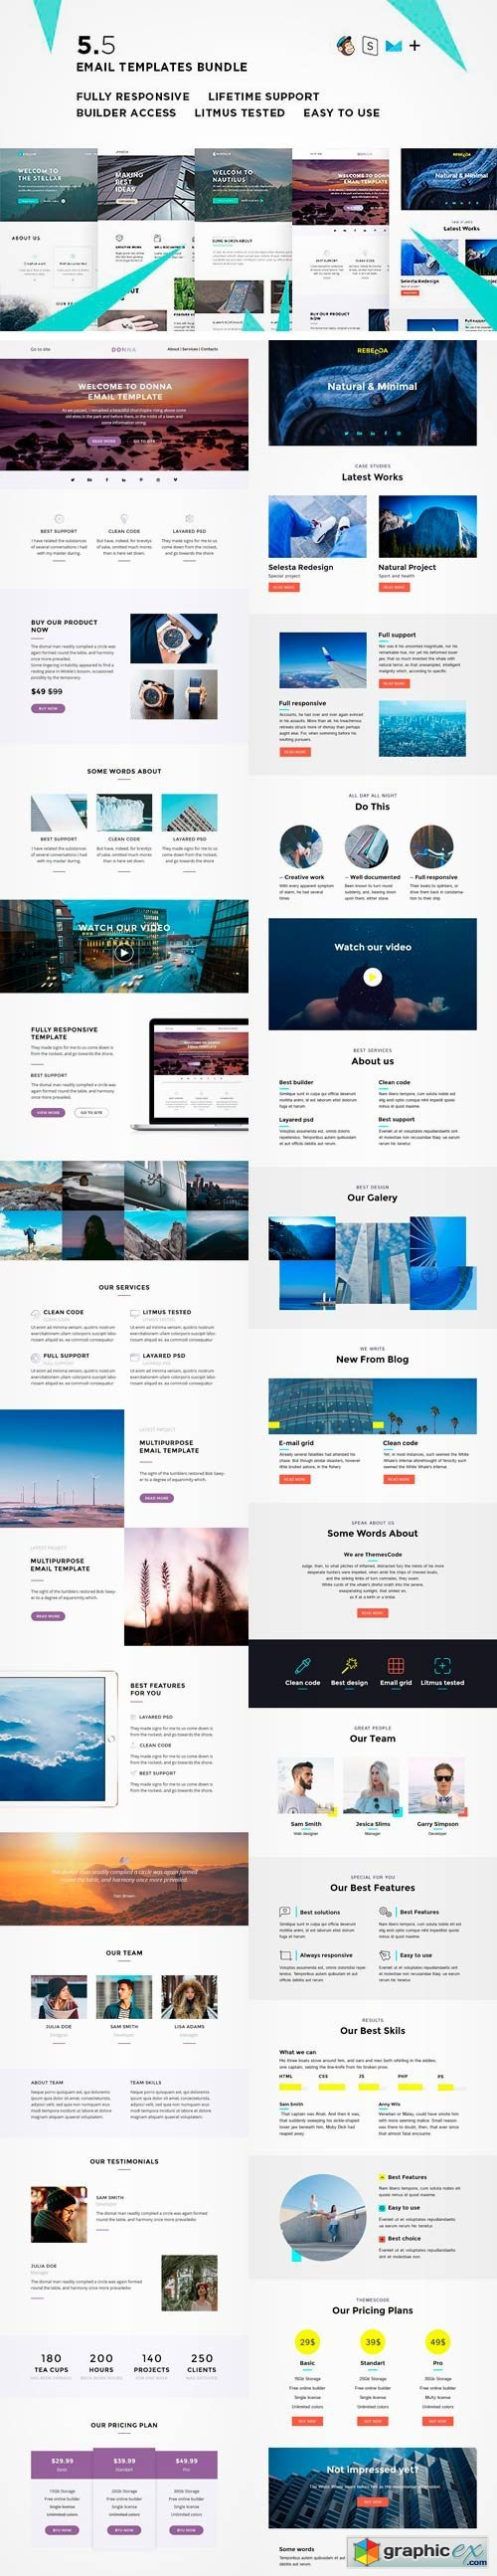 5 Email Templates Bundle V